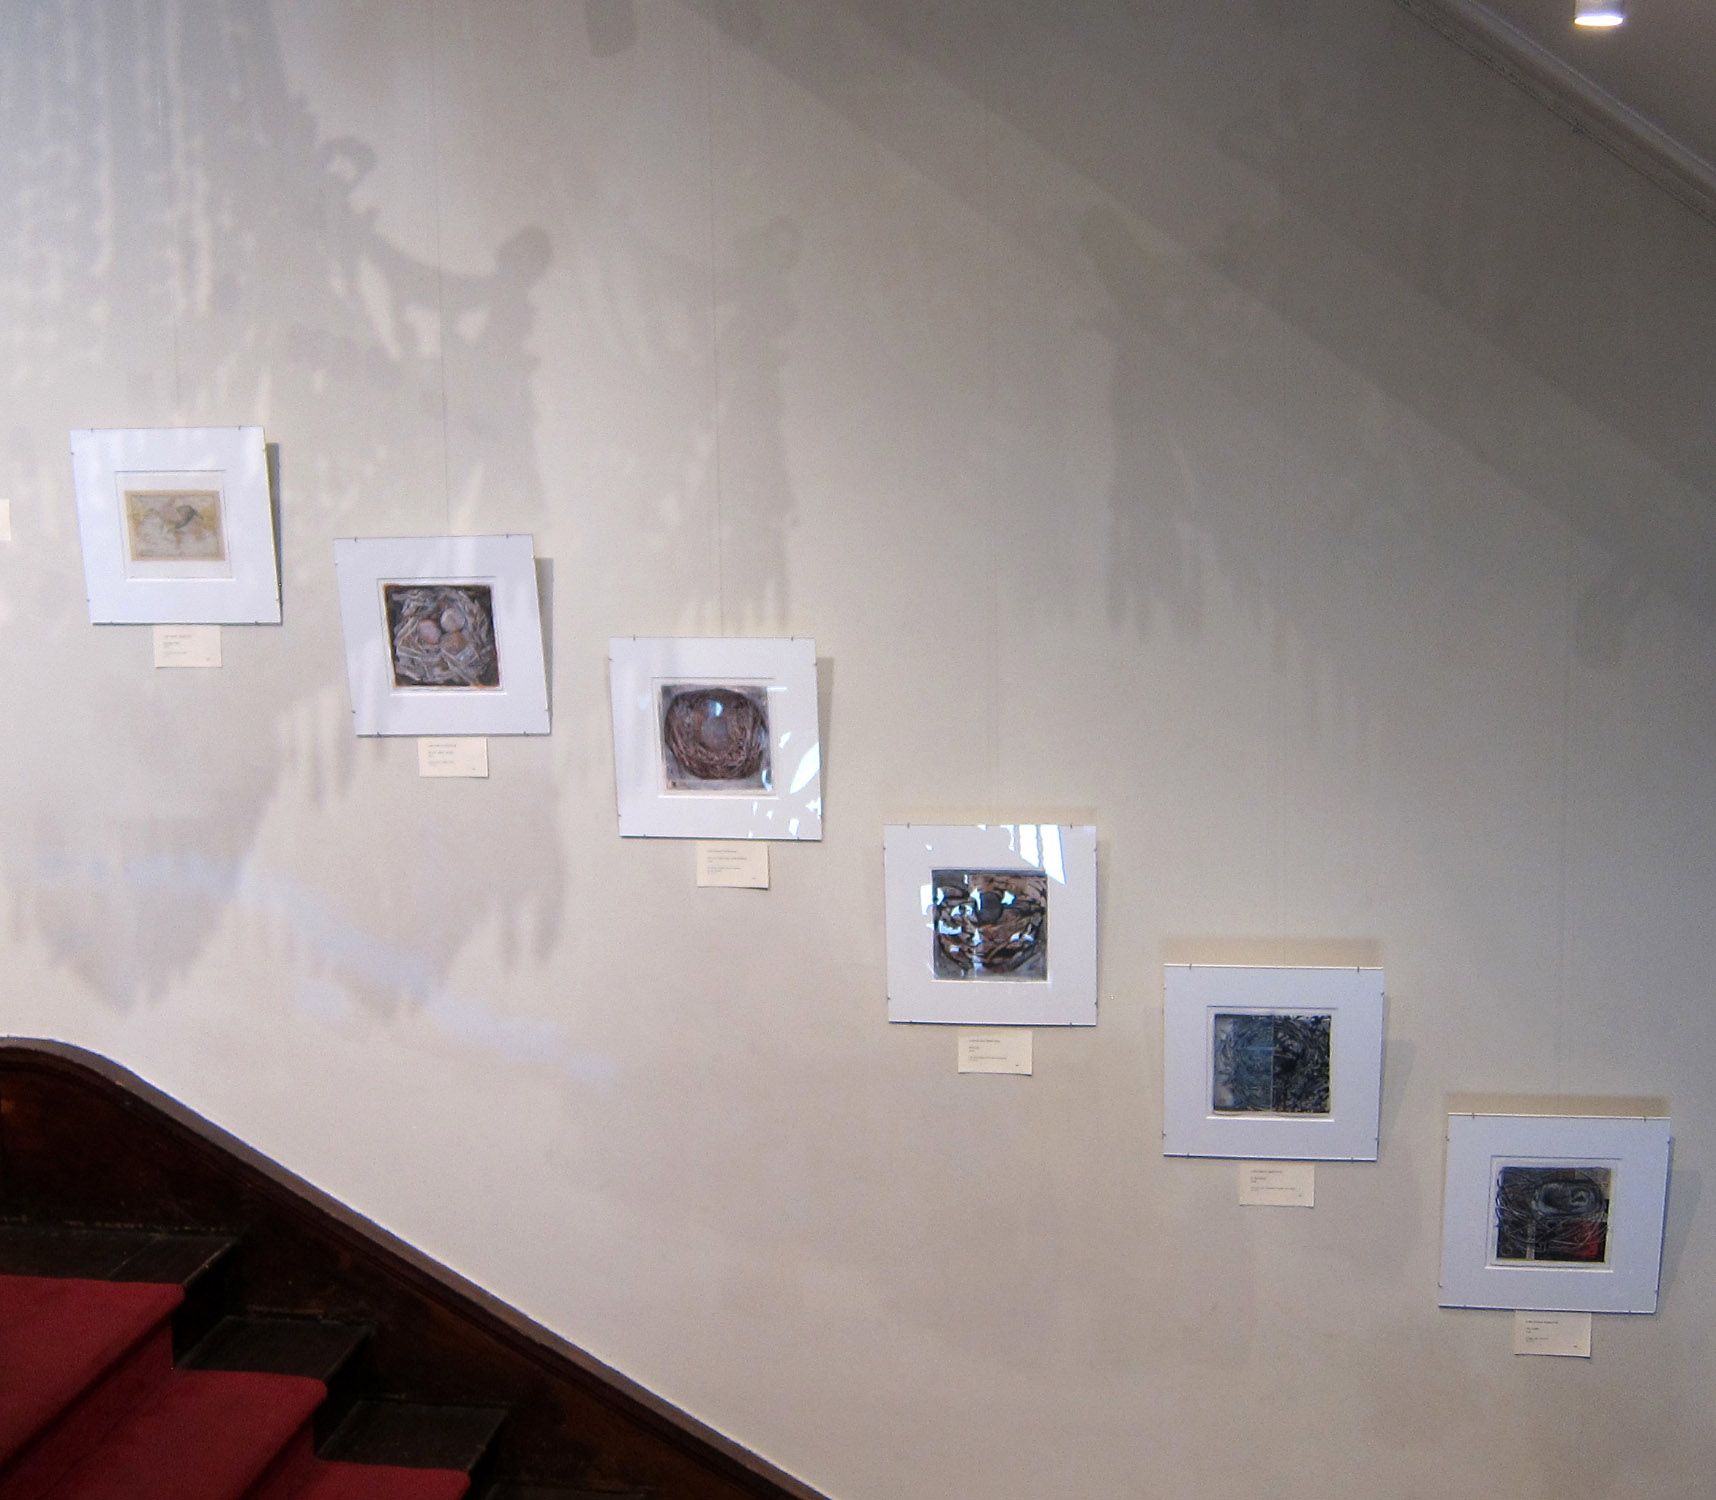 2ce(1) - installed along stairwell, UIA, NYC 2015.jpg